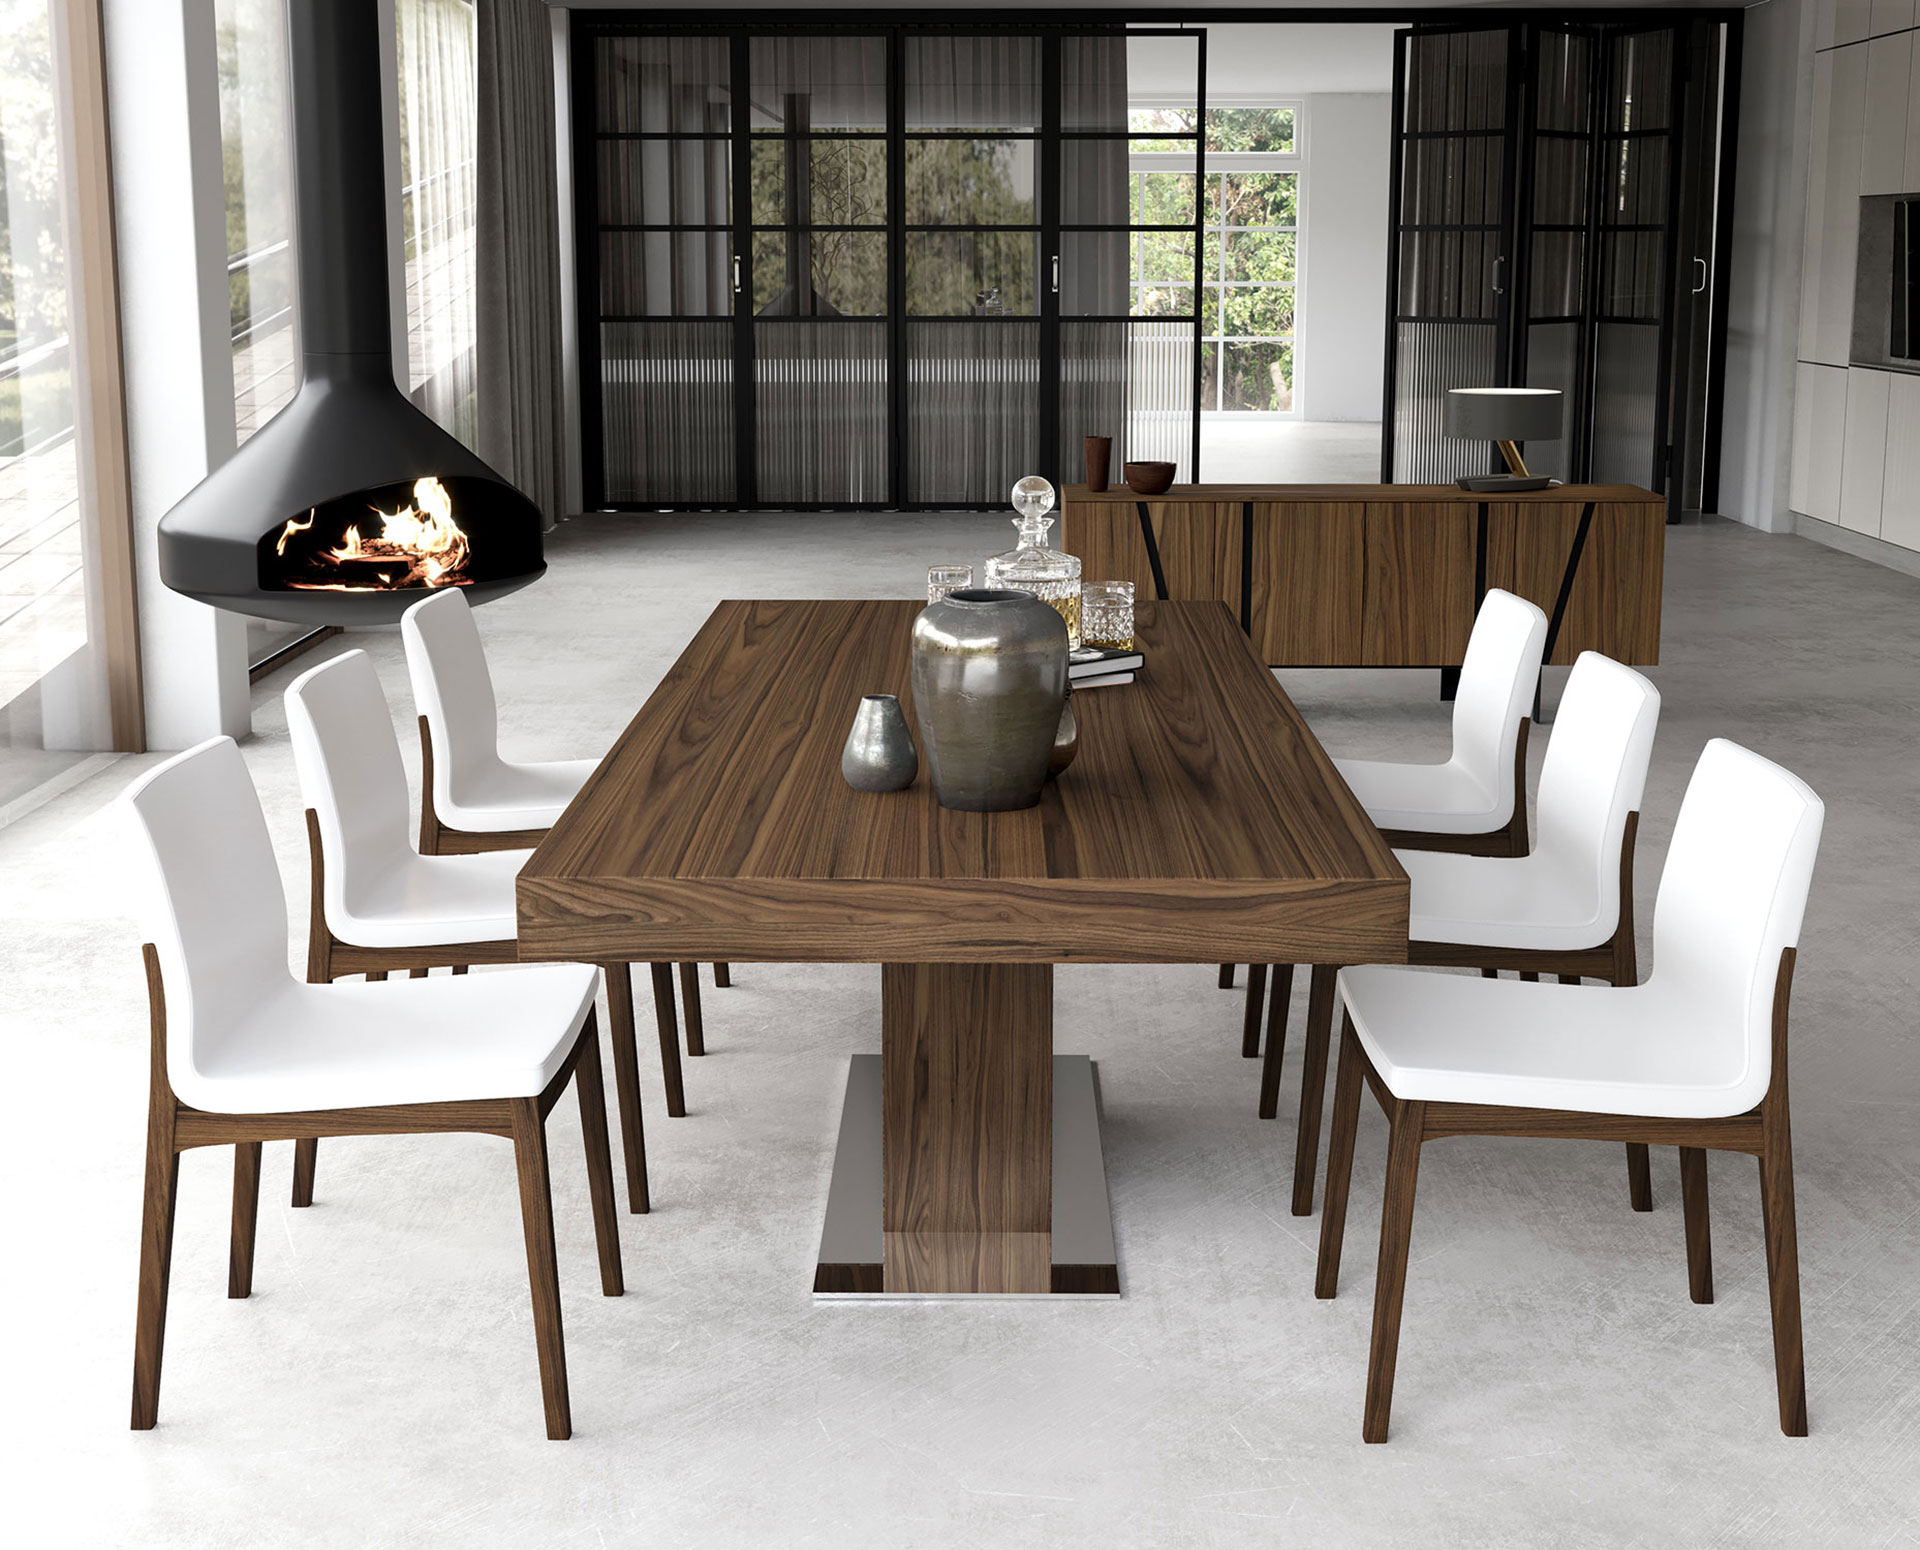 Modloft Astor Dining Table MD520 ficial Store